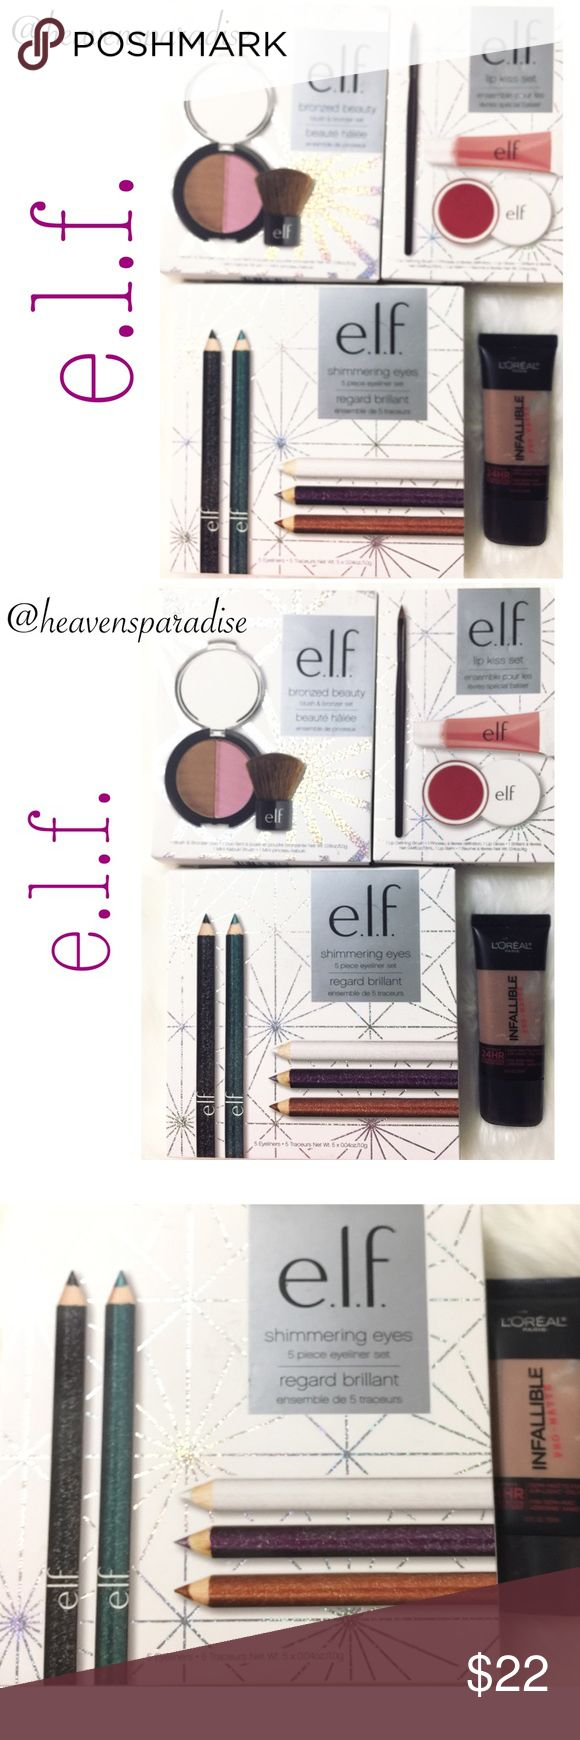 e.l.f. three box sets + L'Oréal foundation This e.l.f. Set has a total of 3 different box sets combined to give you more for your money. With Christmas right around the corner this is sure to sell pretty quickly.  •bronzed beauty blush & bronzer set:   1 blush & bronzer duo •shimmering eyes:   5 pcs eyeliner set:   1 black, 1 green, 1 white, 1 purple, & 1 brown •lip kiss set:   1 lip defining brush, 1 lip gloss, & 1 lip balm •L'Oréal Infallible pro-matte foundation:   Color Cocoa e.l.f…